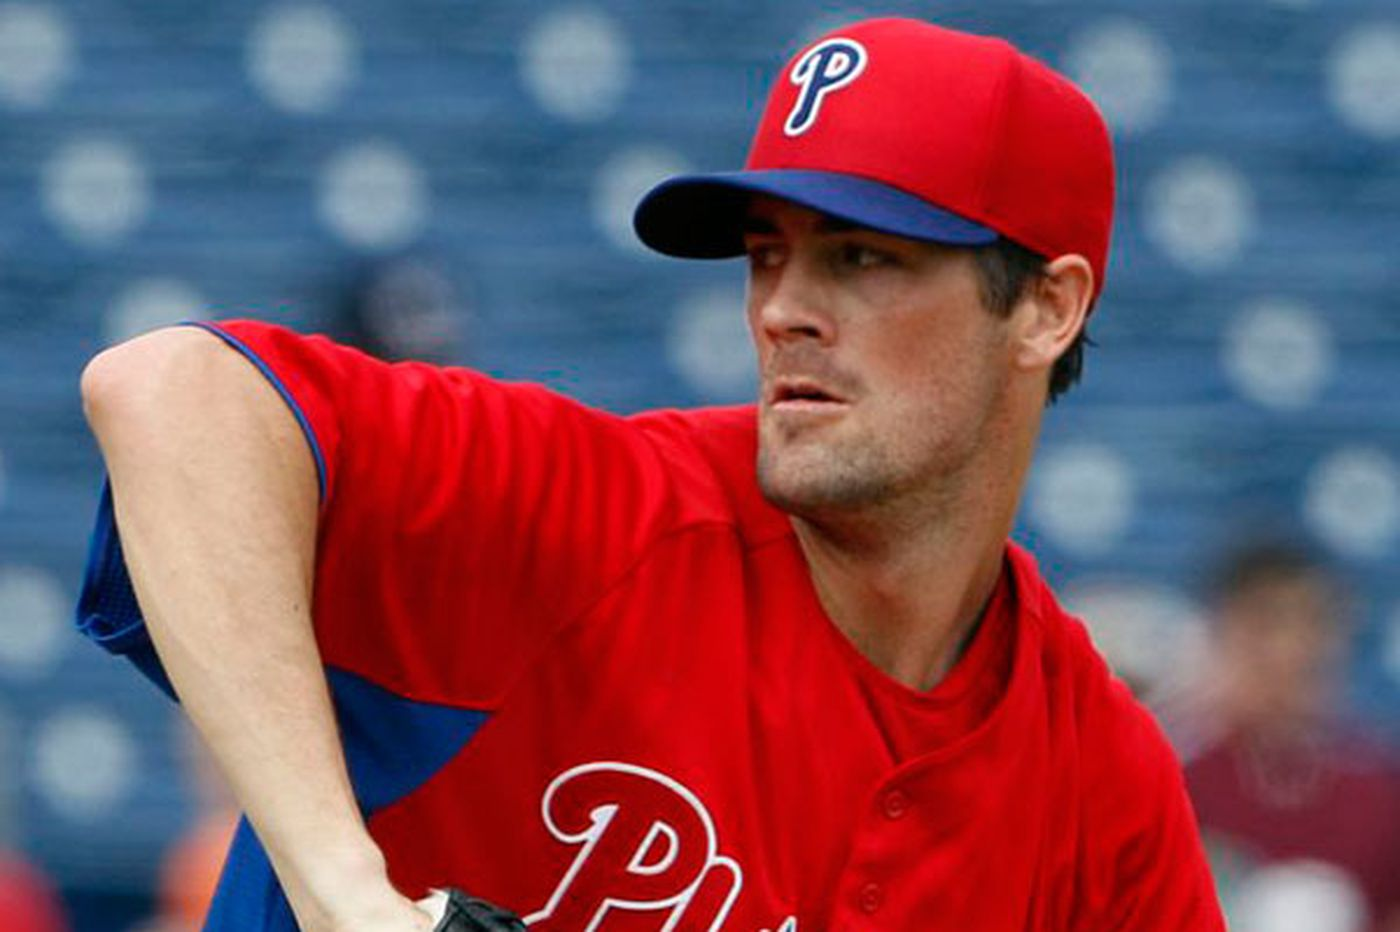 Cougars want Cole Hamels on their mound